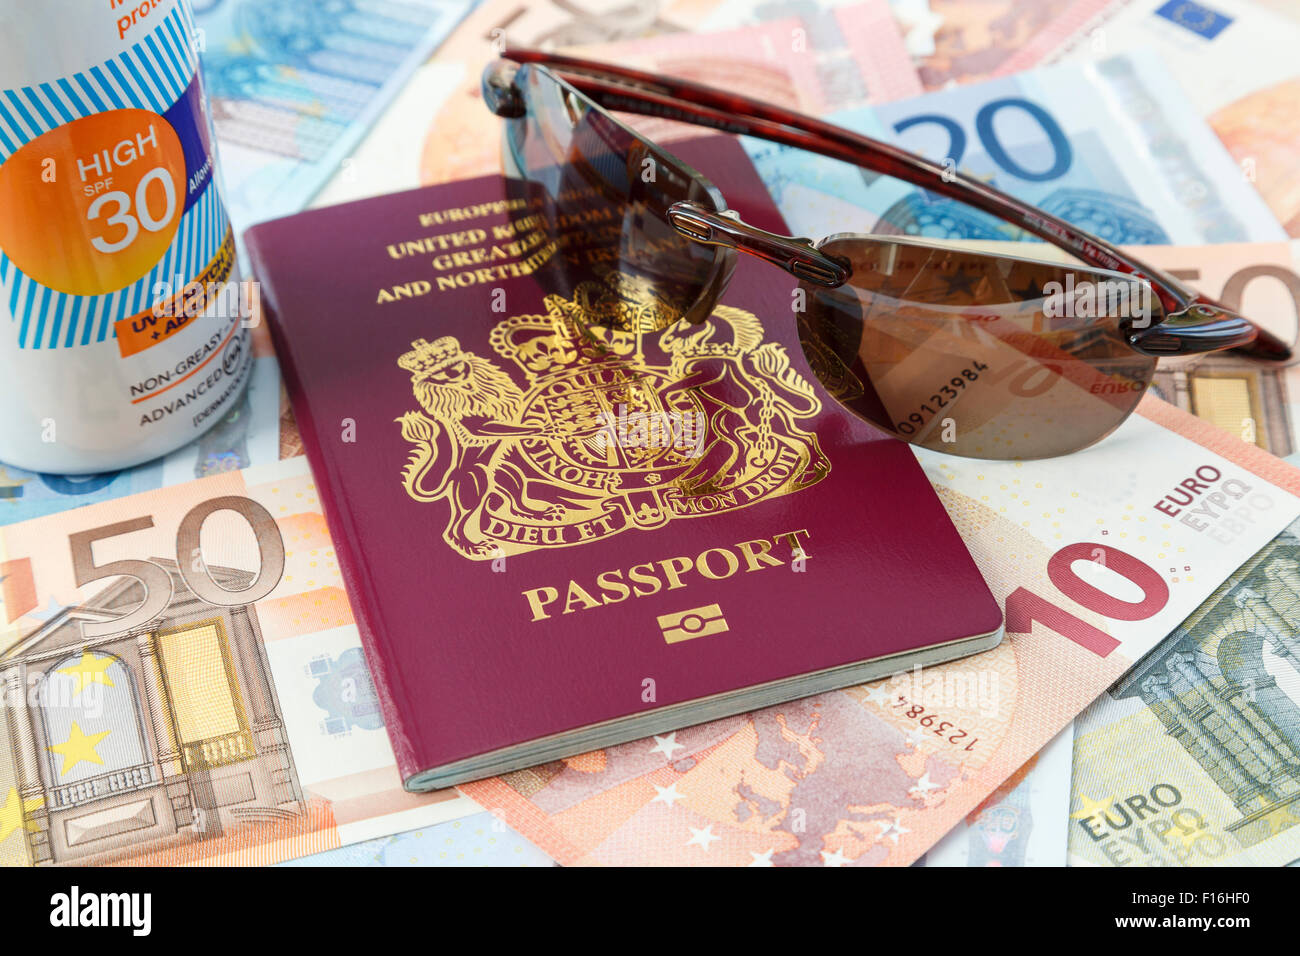 Travel things with British biometric passport Euro currency suncream and sunglasses for travelling to Eurozone countries - Stock Image